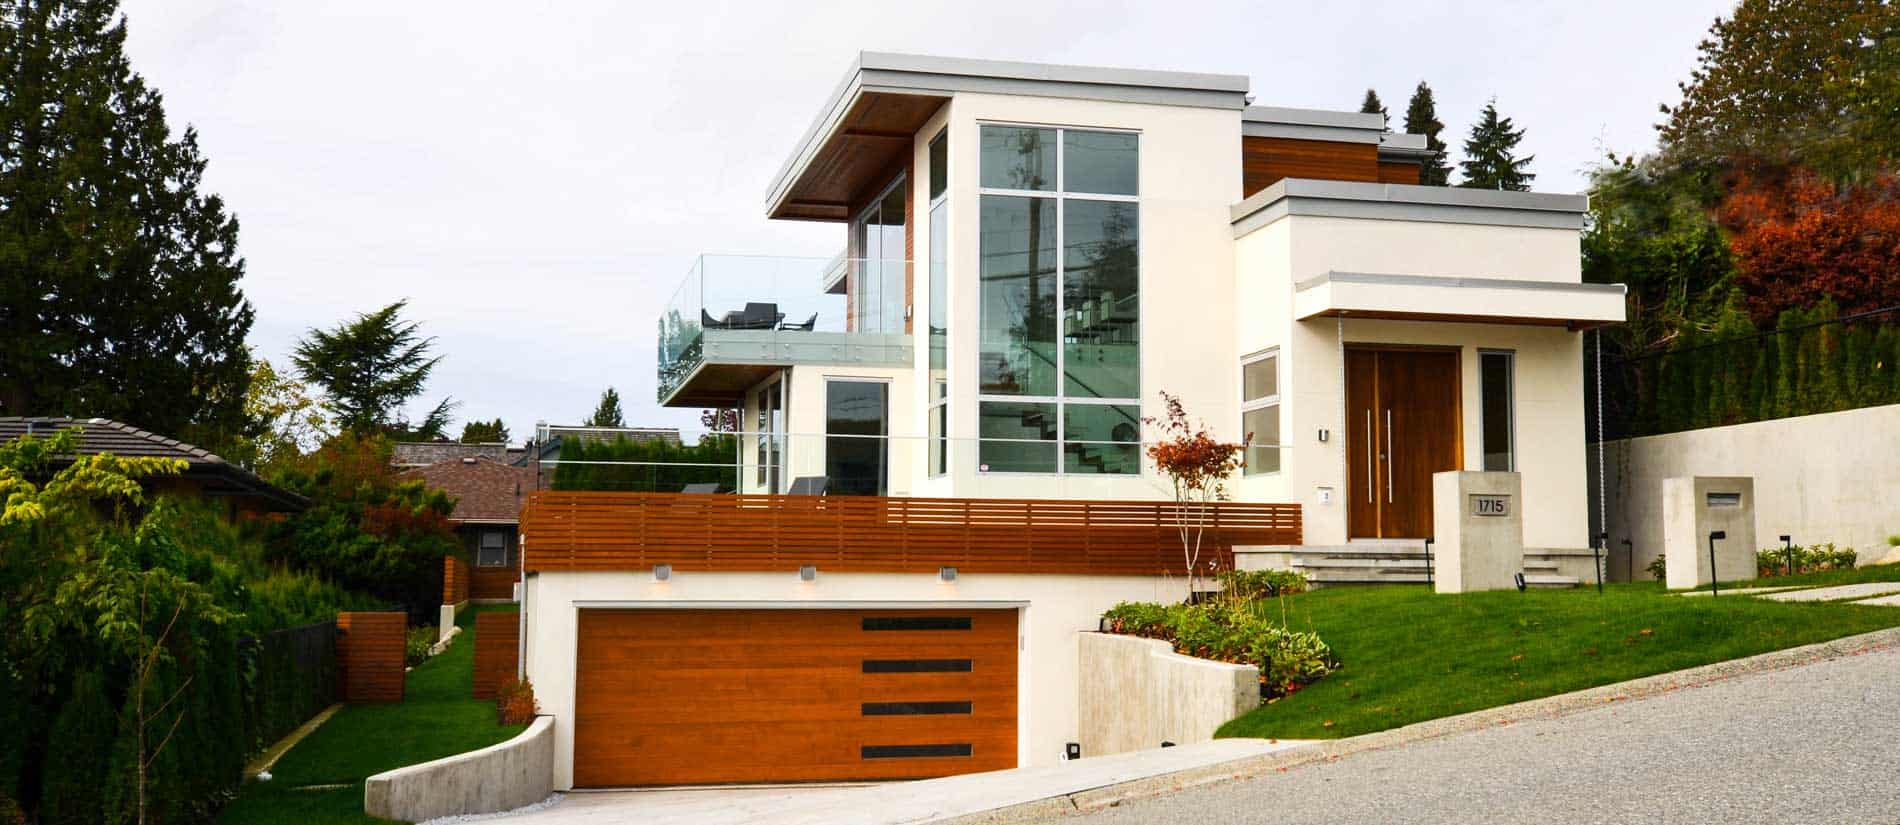 Modern custom home in North Vancouver.